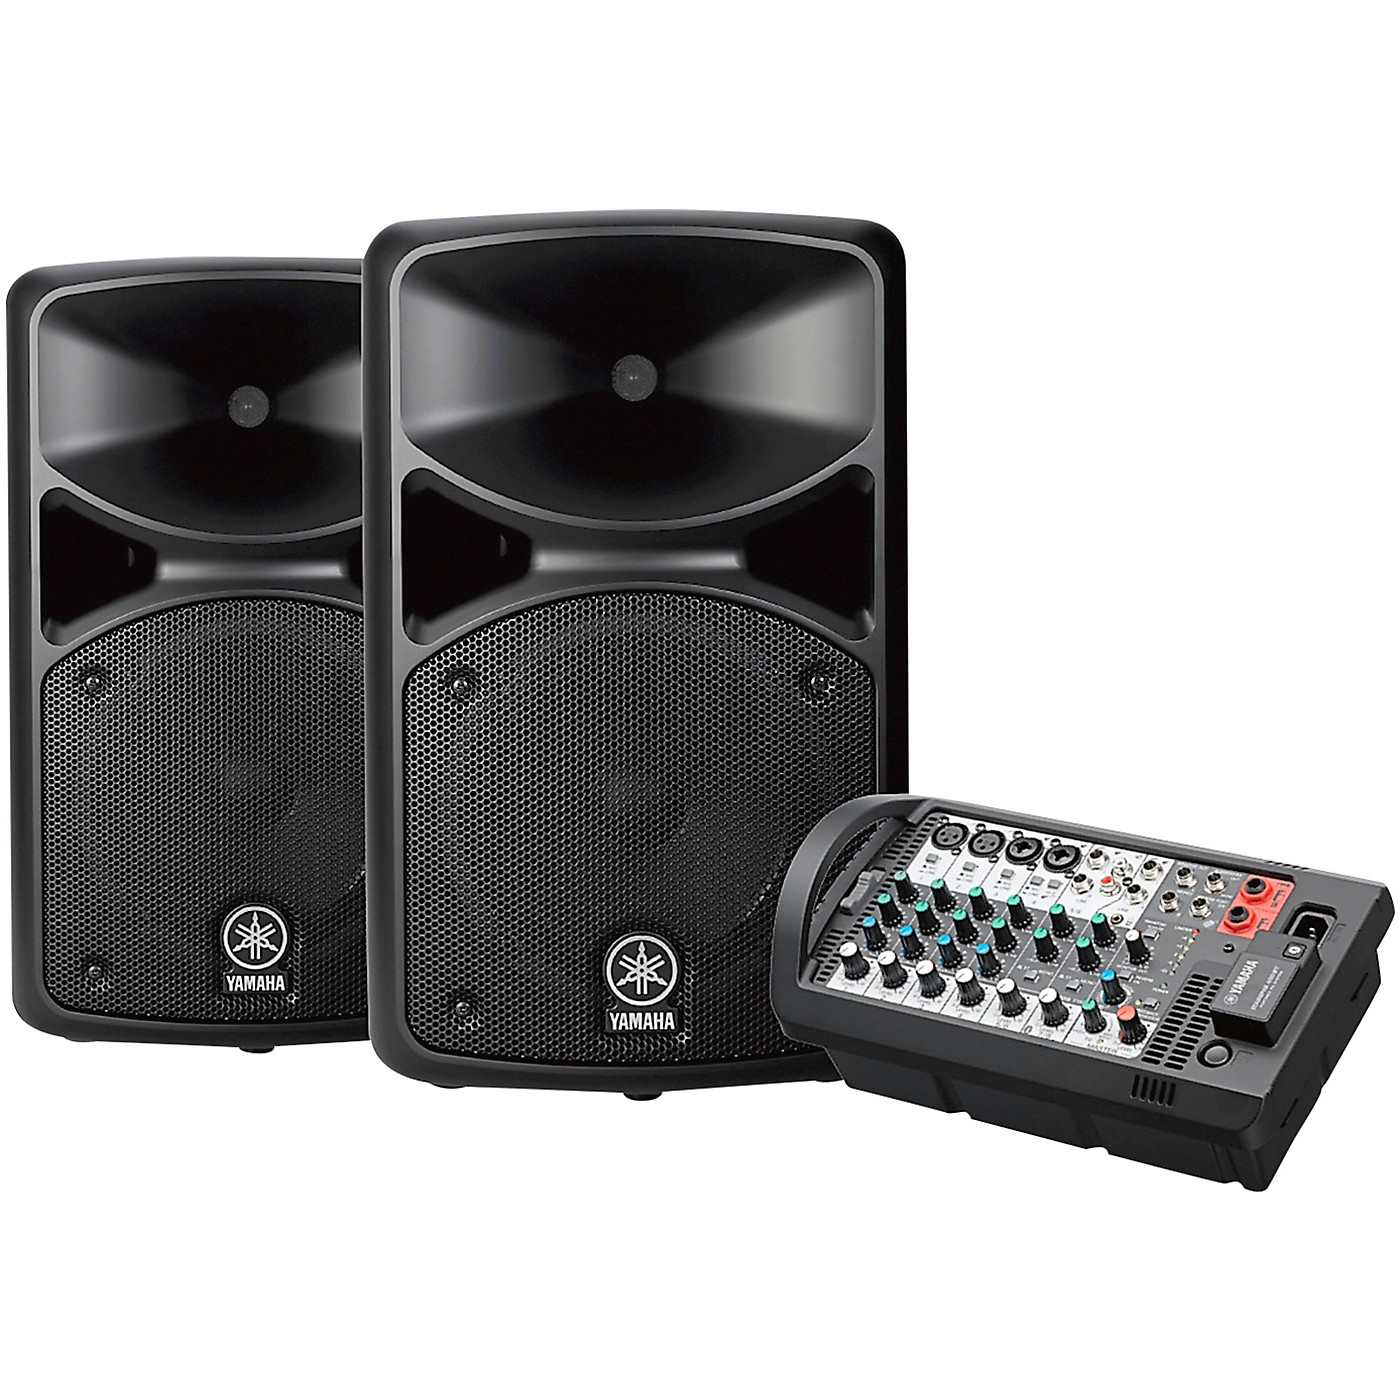 Yamaha STAGEPAS 400BT Portable PA system with Bluetooth thumbnail